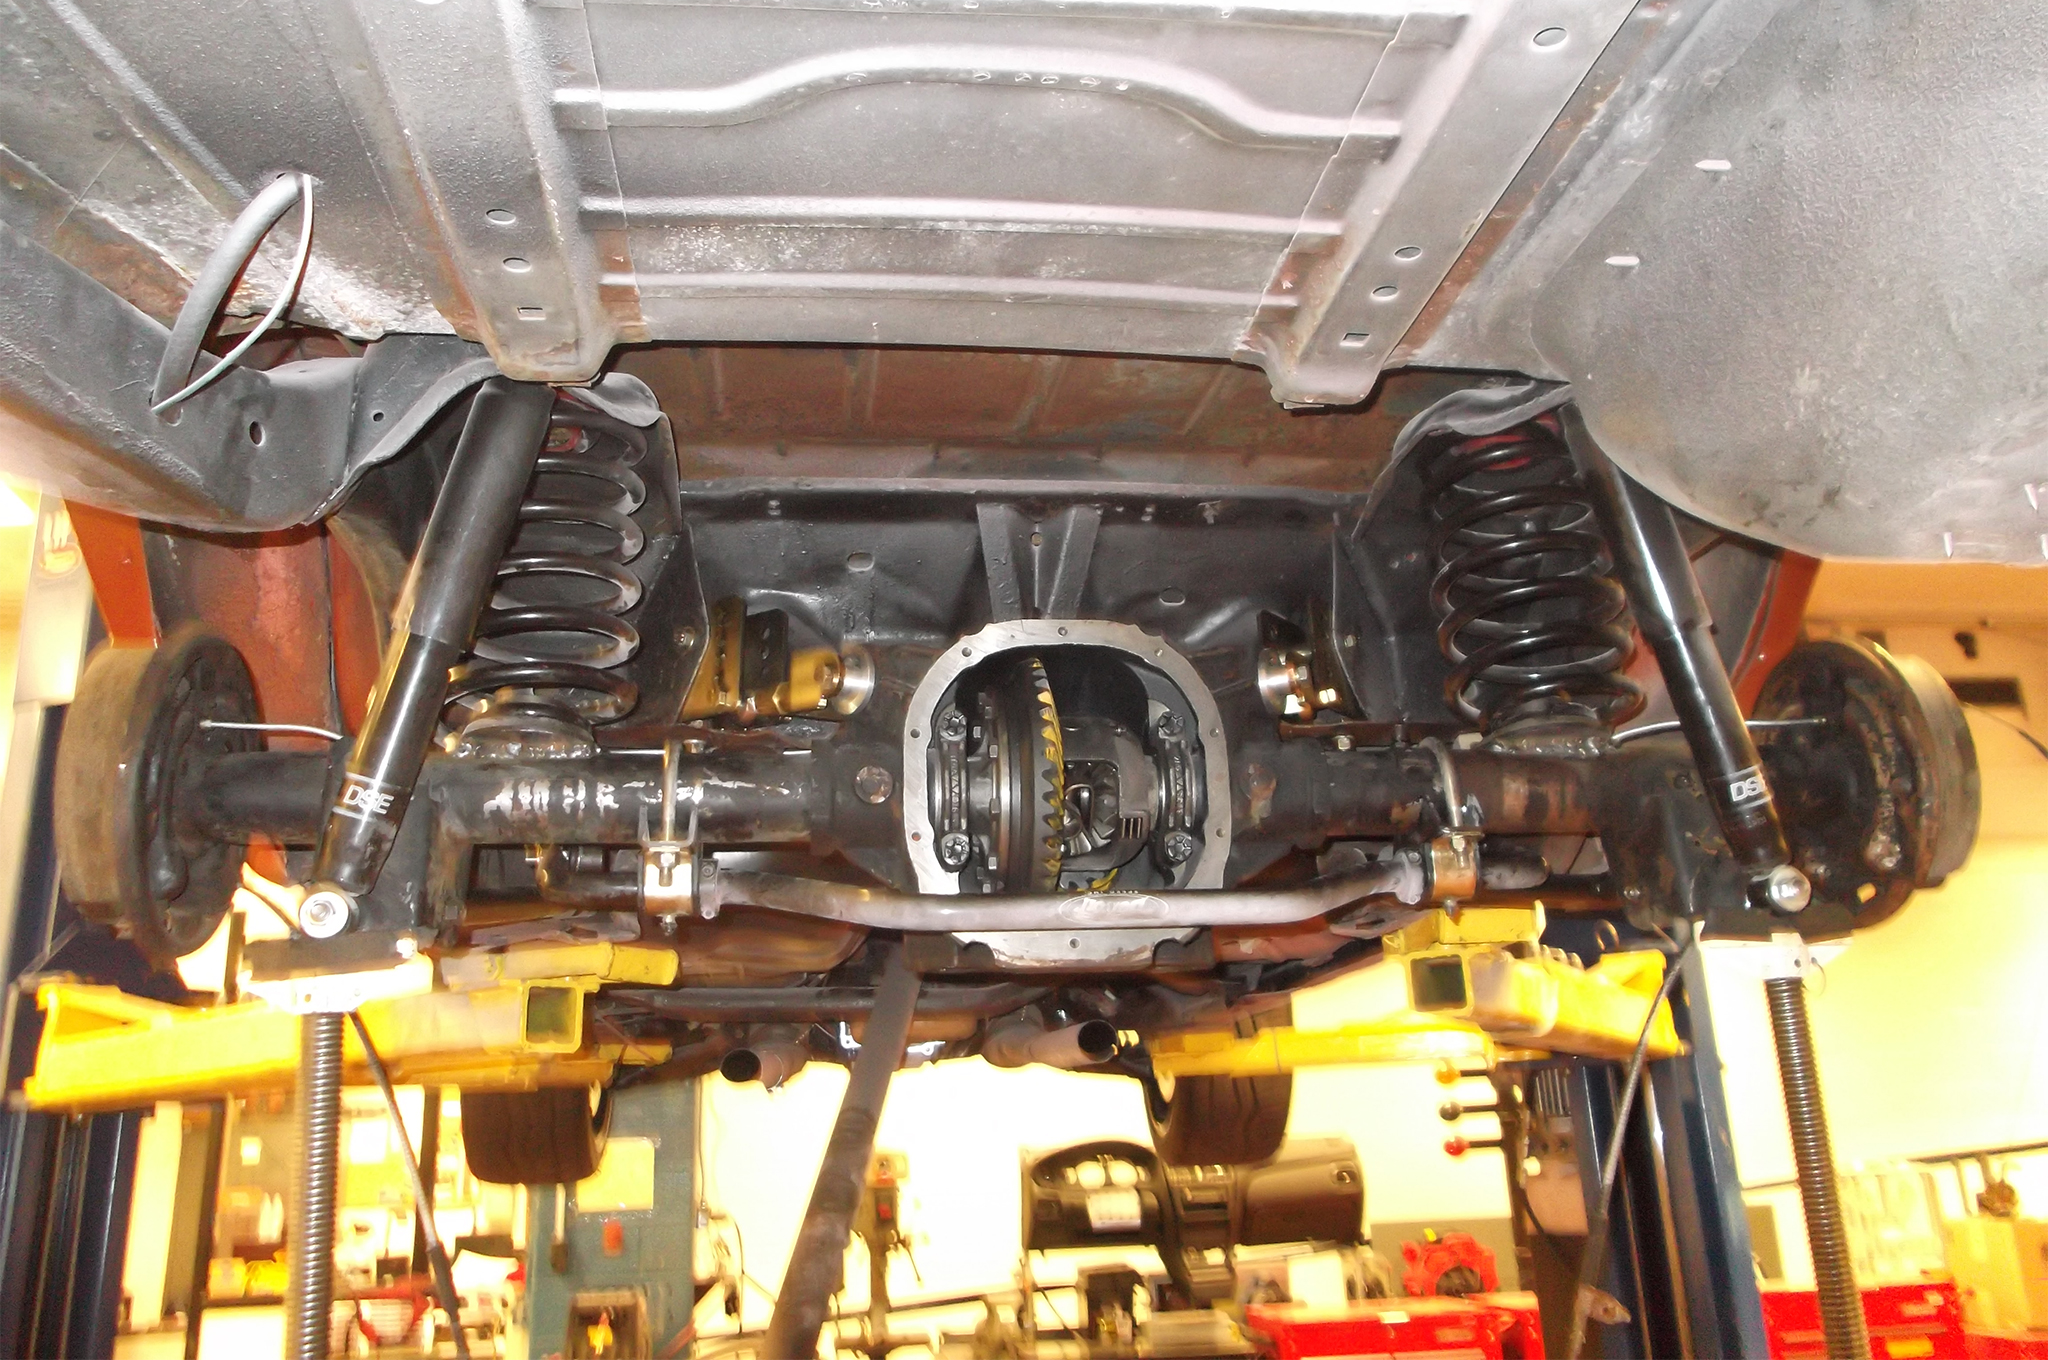 How To Swap An 88 Inch Ford Rear Into A Gm G Body Hot Rod Network 94 Explorer Engine Diagram Knock Here Is Build In Progress Using The Baseline Suspensions Kit With Detroit Speed Lower Control Arms Springs Shocks And Sway Bar